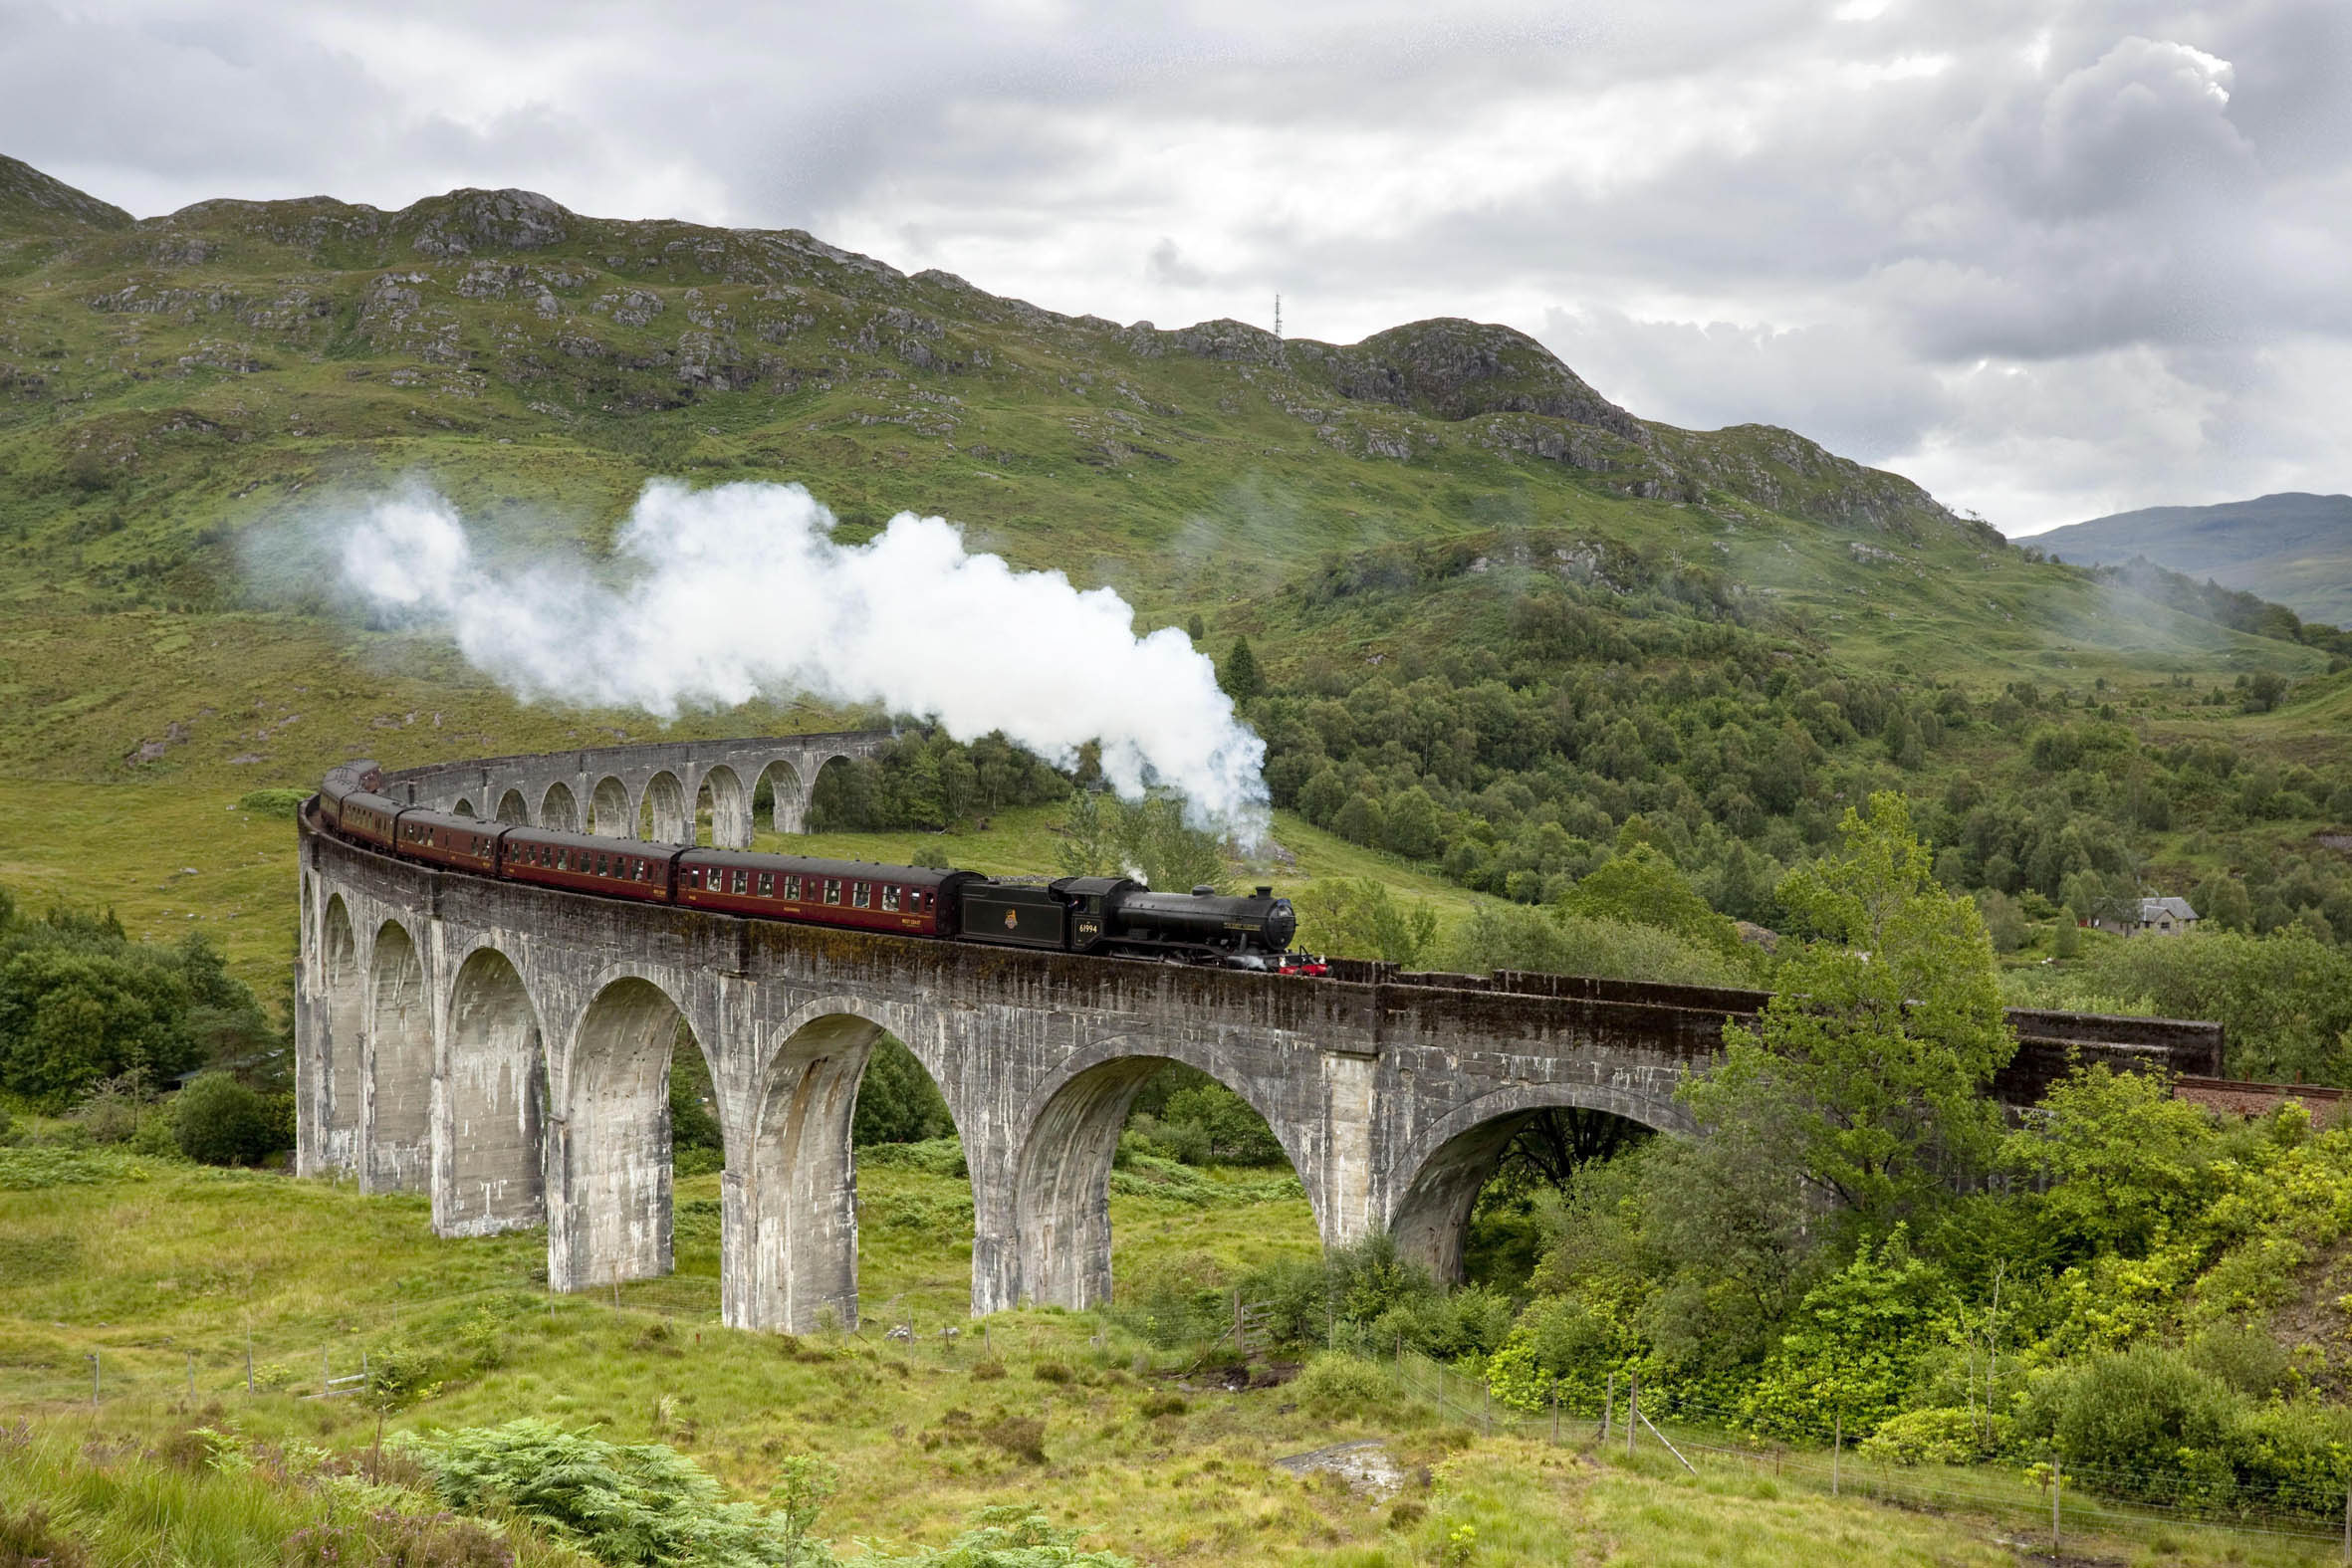 The Jacobite steam train passing over the Glenfinnan Viaduct at the head of Loch Shiel, Lochaber, Highlands of Scotland. Picture Credit : Paul Tomkins / VisitScotland / Scottish Viewpoint Tel: +44 (0) 131 622 7174   Fax: +44 (0) 131 622 7175 E-Mail : info@scottishviewpoint.com This photograph cannot be used without prior permission from Scottish Viewpoint.